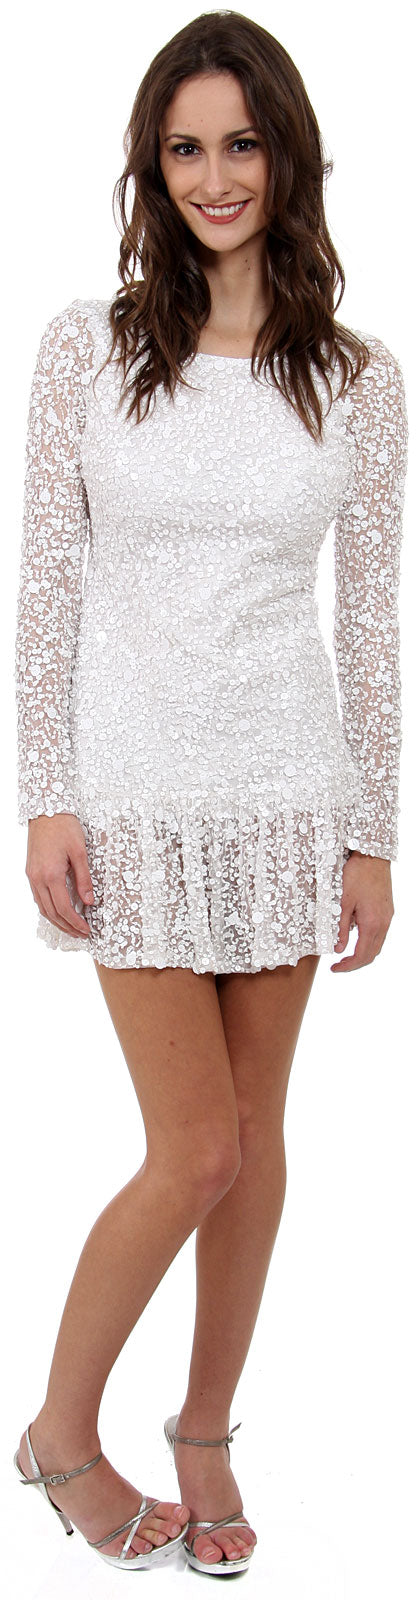 Image of Full Sleeves Flared Skirt Sequined Mini Party Dress in White